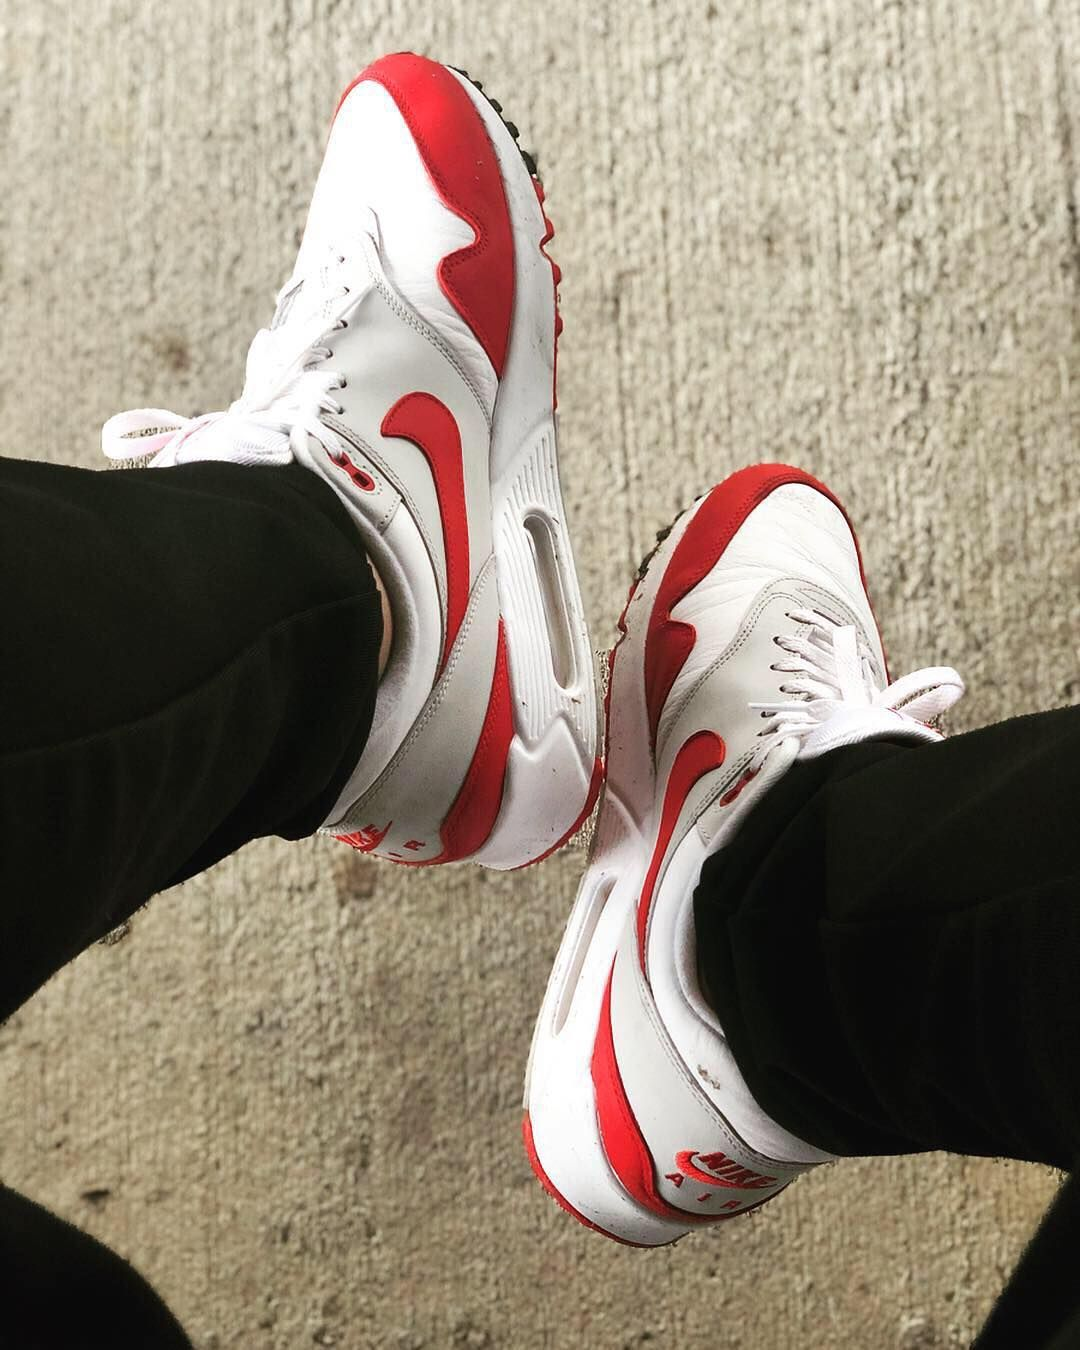 52633ad8f Watch the Best YouTube Videos Online - Happy AirMax day 3.26 - - - # airmaxday